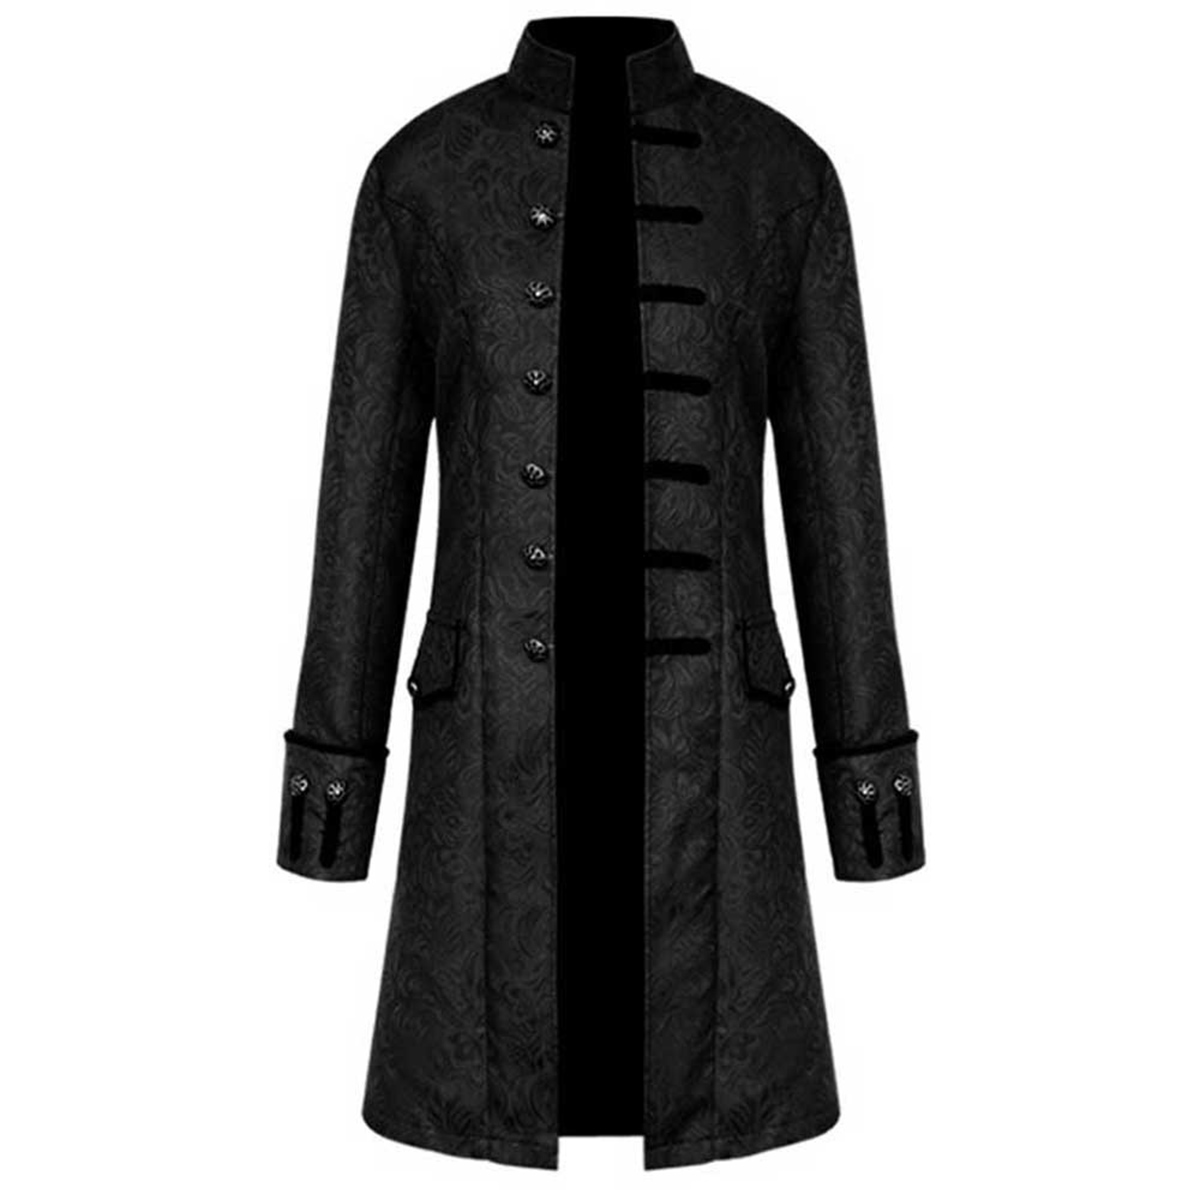 Improved Mens Steampunk Vintage Tailcoat Jacket Gothic Victorian Frock Coat Uniform Costume Pxmoda